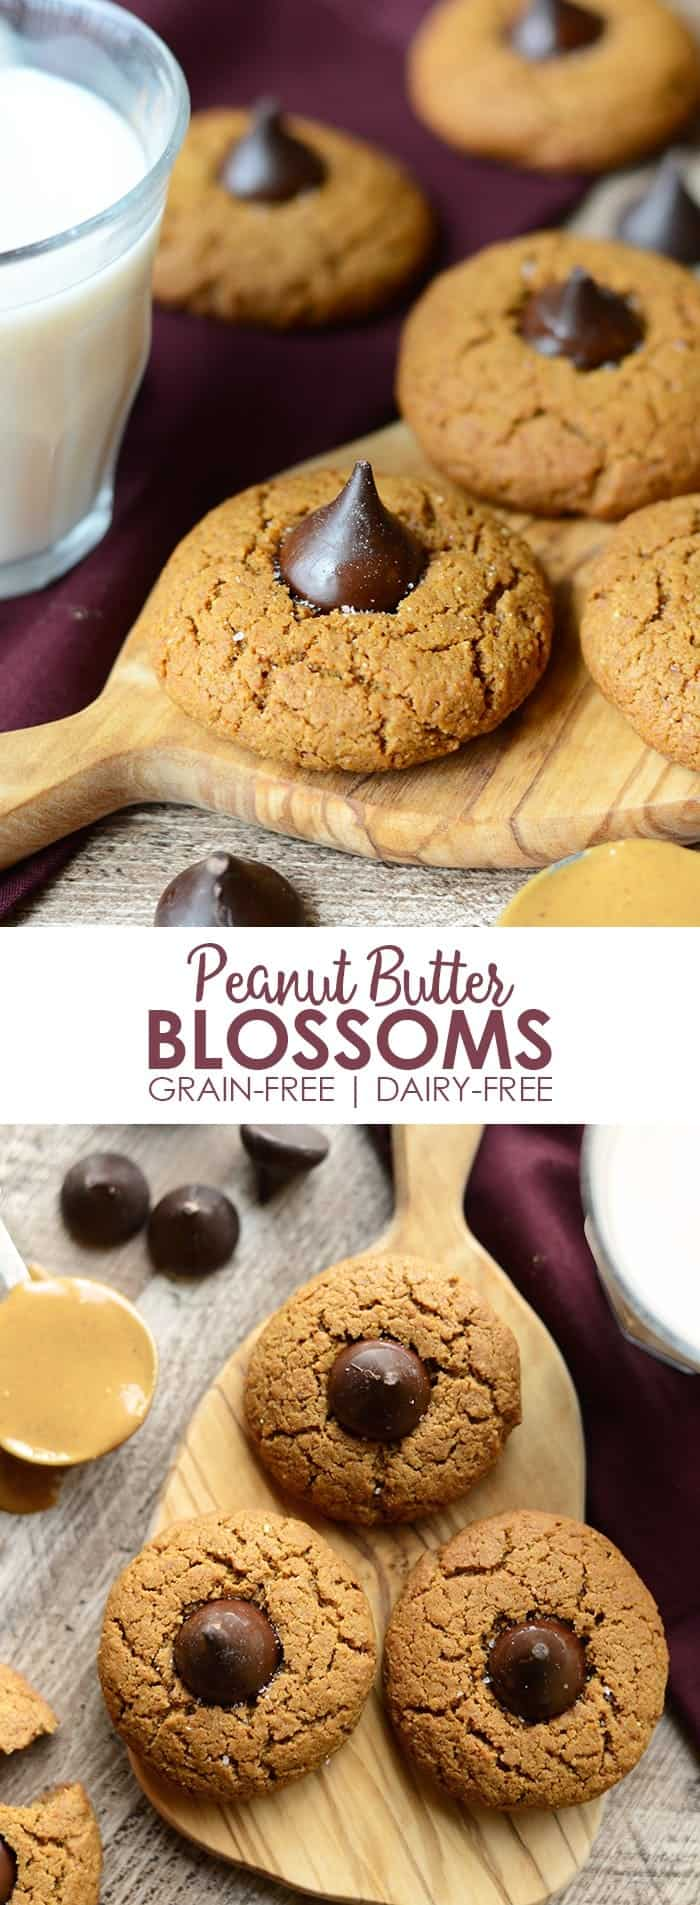 Looking for a healthy peanut butter blossom recipe? I made a few healthy modifications in a classic recipe to bring you the most delicious and easy grain-free peanut butter blossoms of the season!